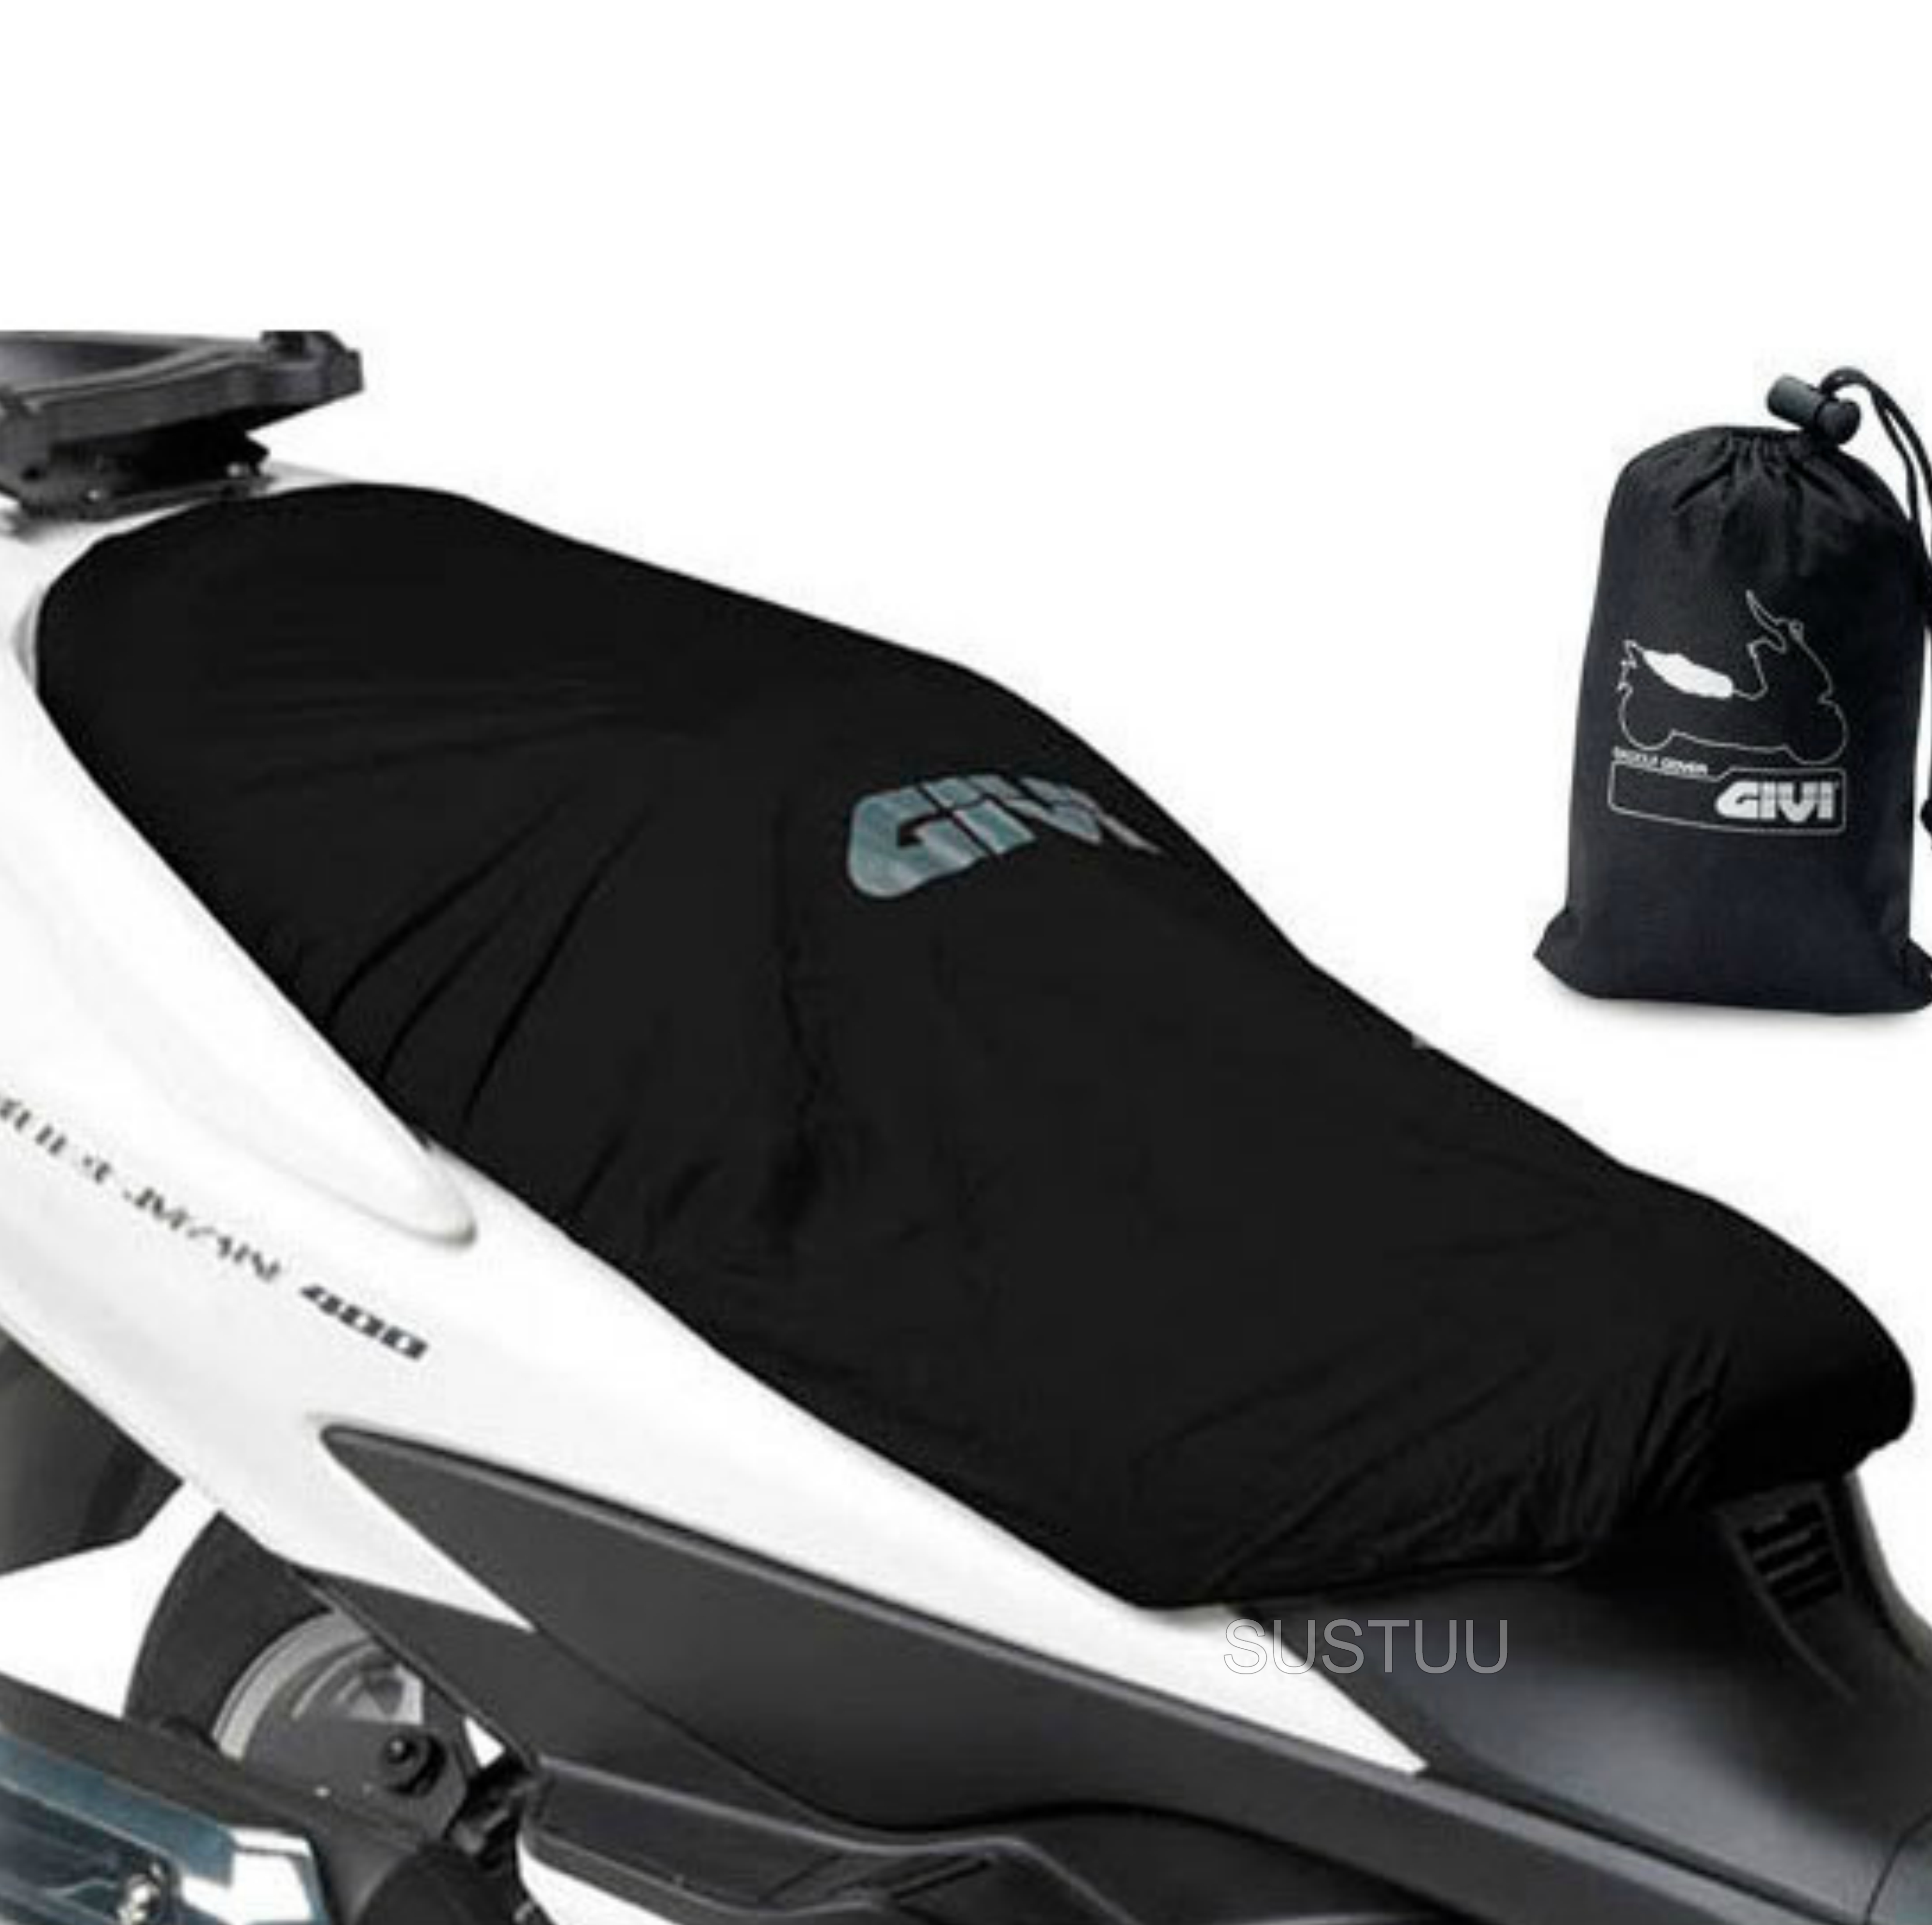 GIVI Universal Waterproof Seat Cover S210|Protects from Rain & Dust|100% Genuine